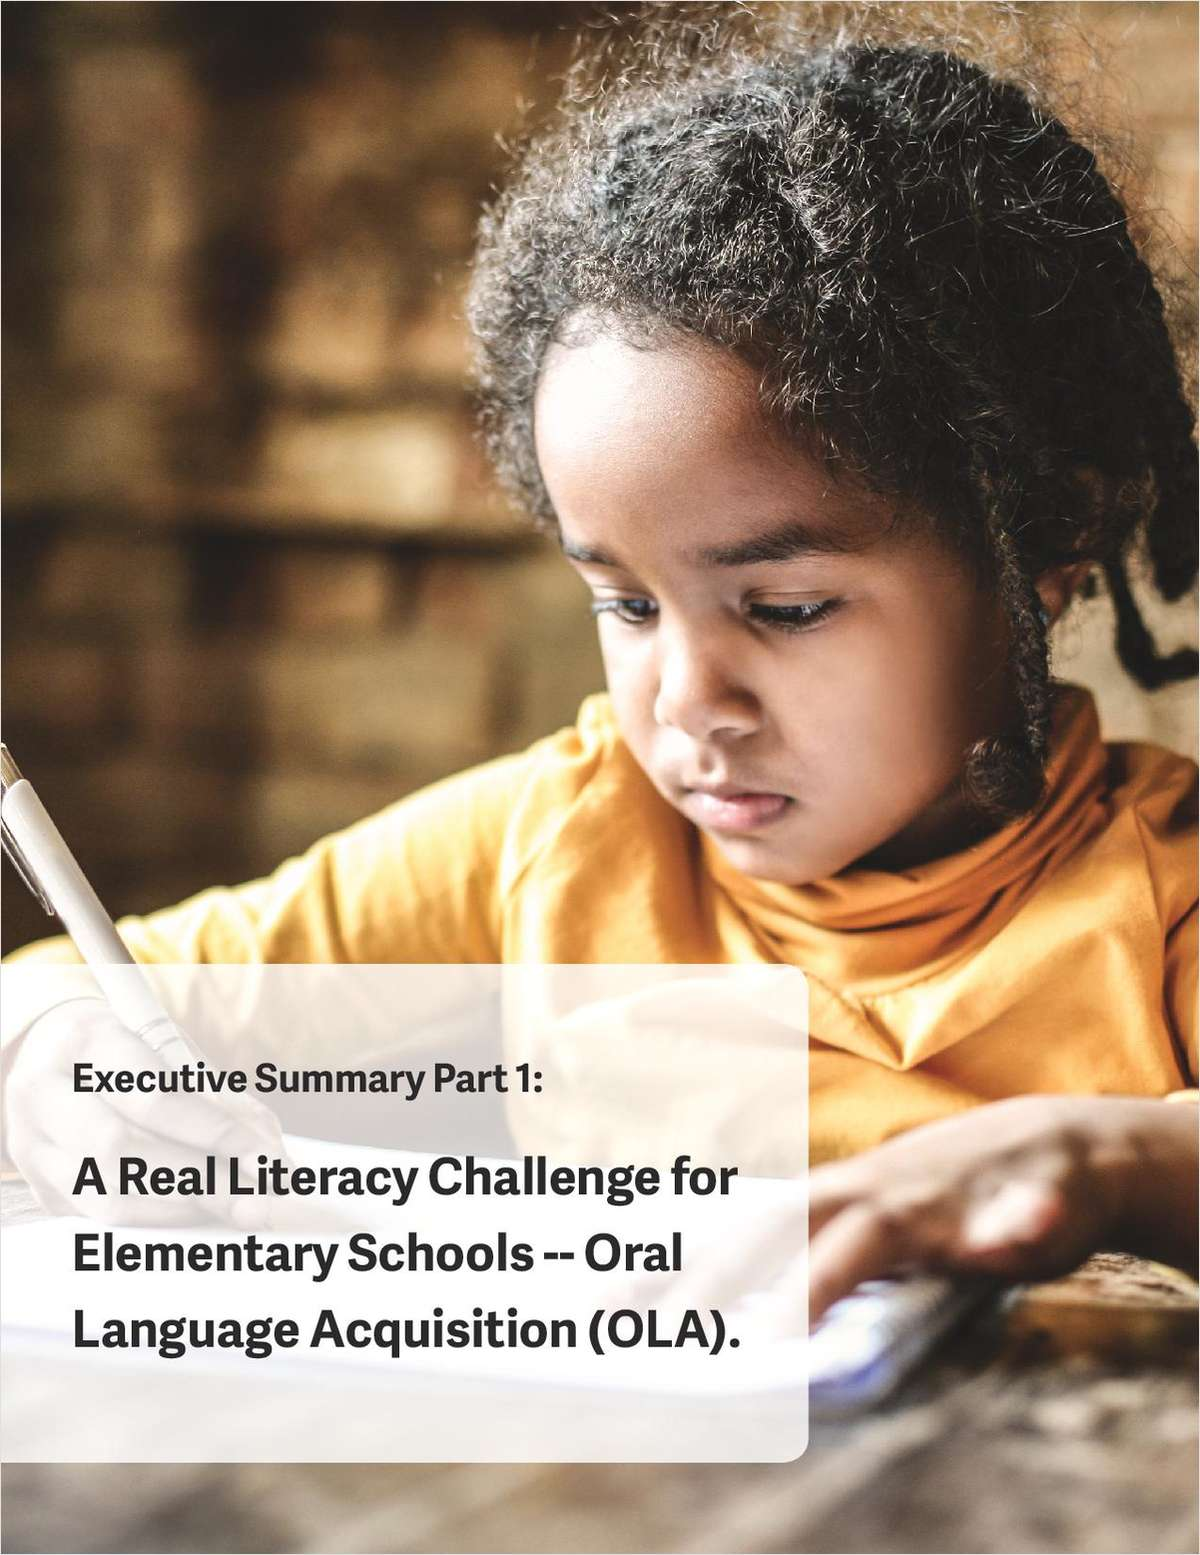 A Real Literacy Challenge for Elementary Schools (Pre K - 2) -- Oral Language Acquisition (OLA)